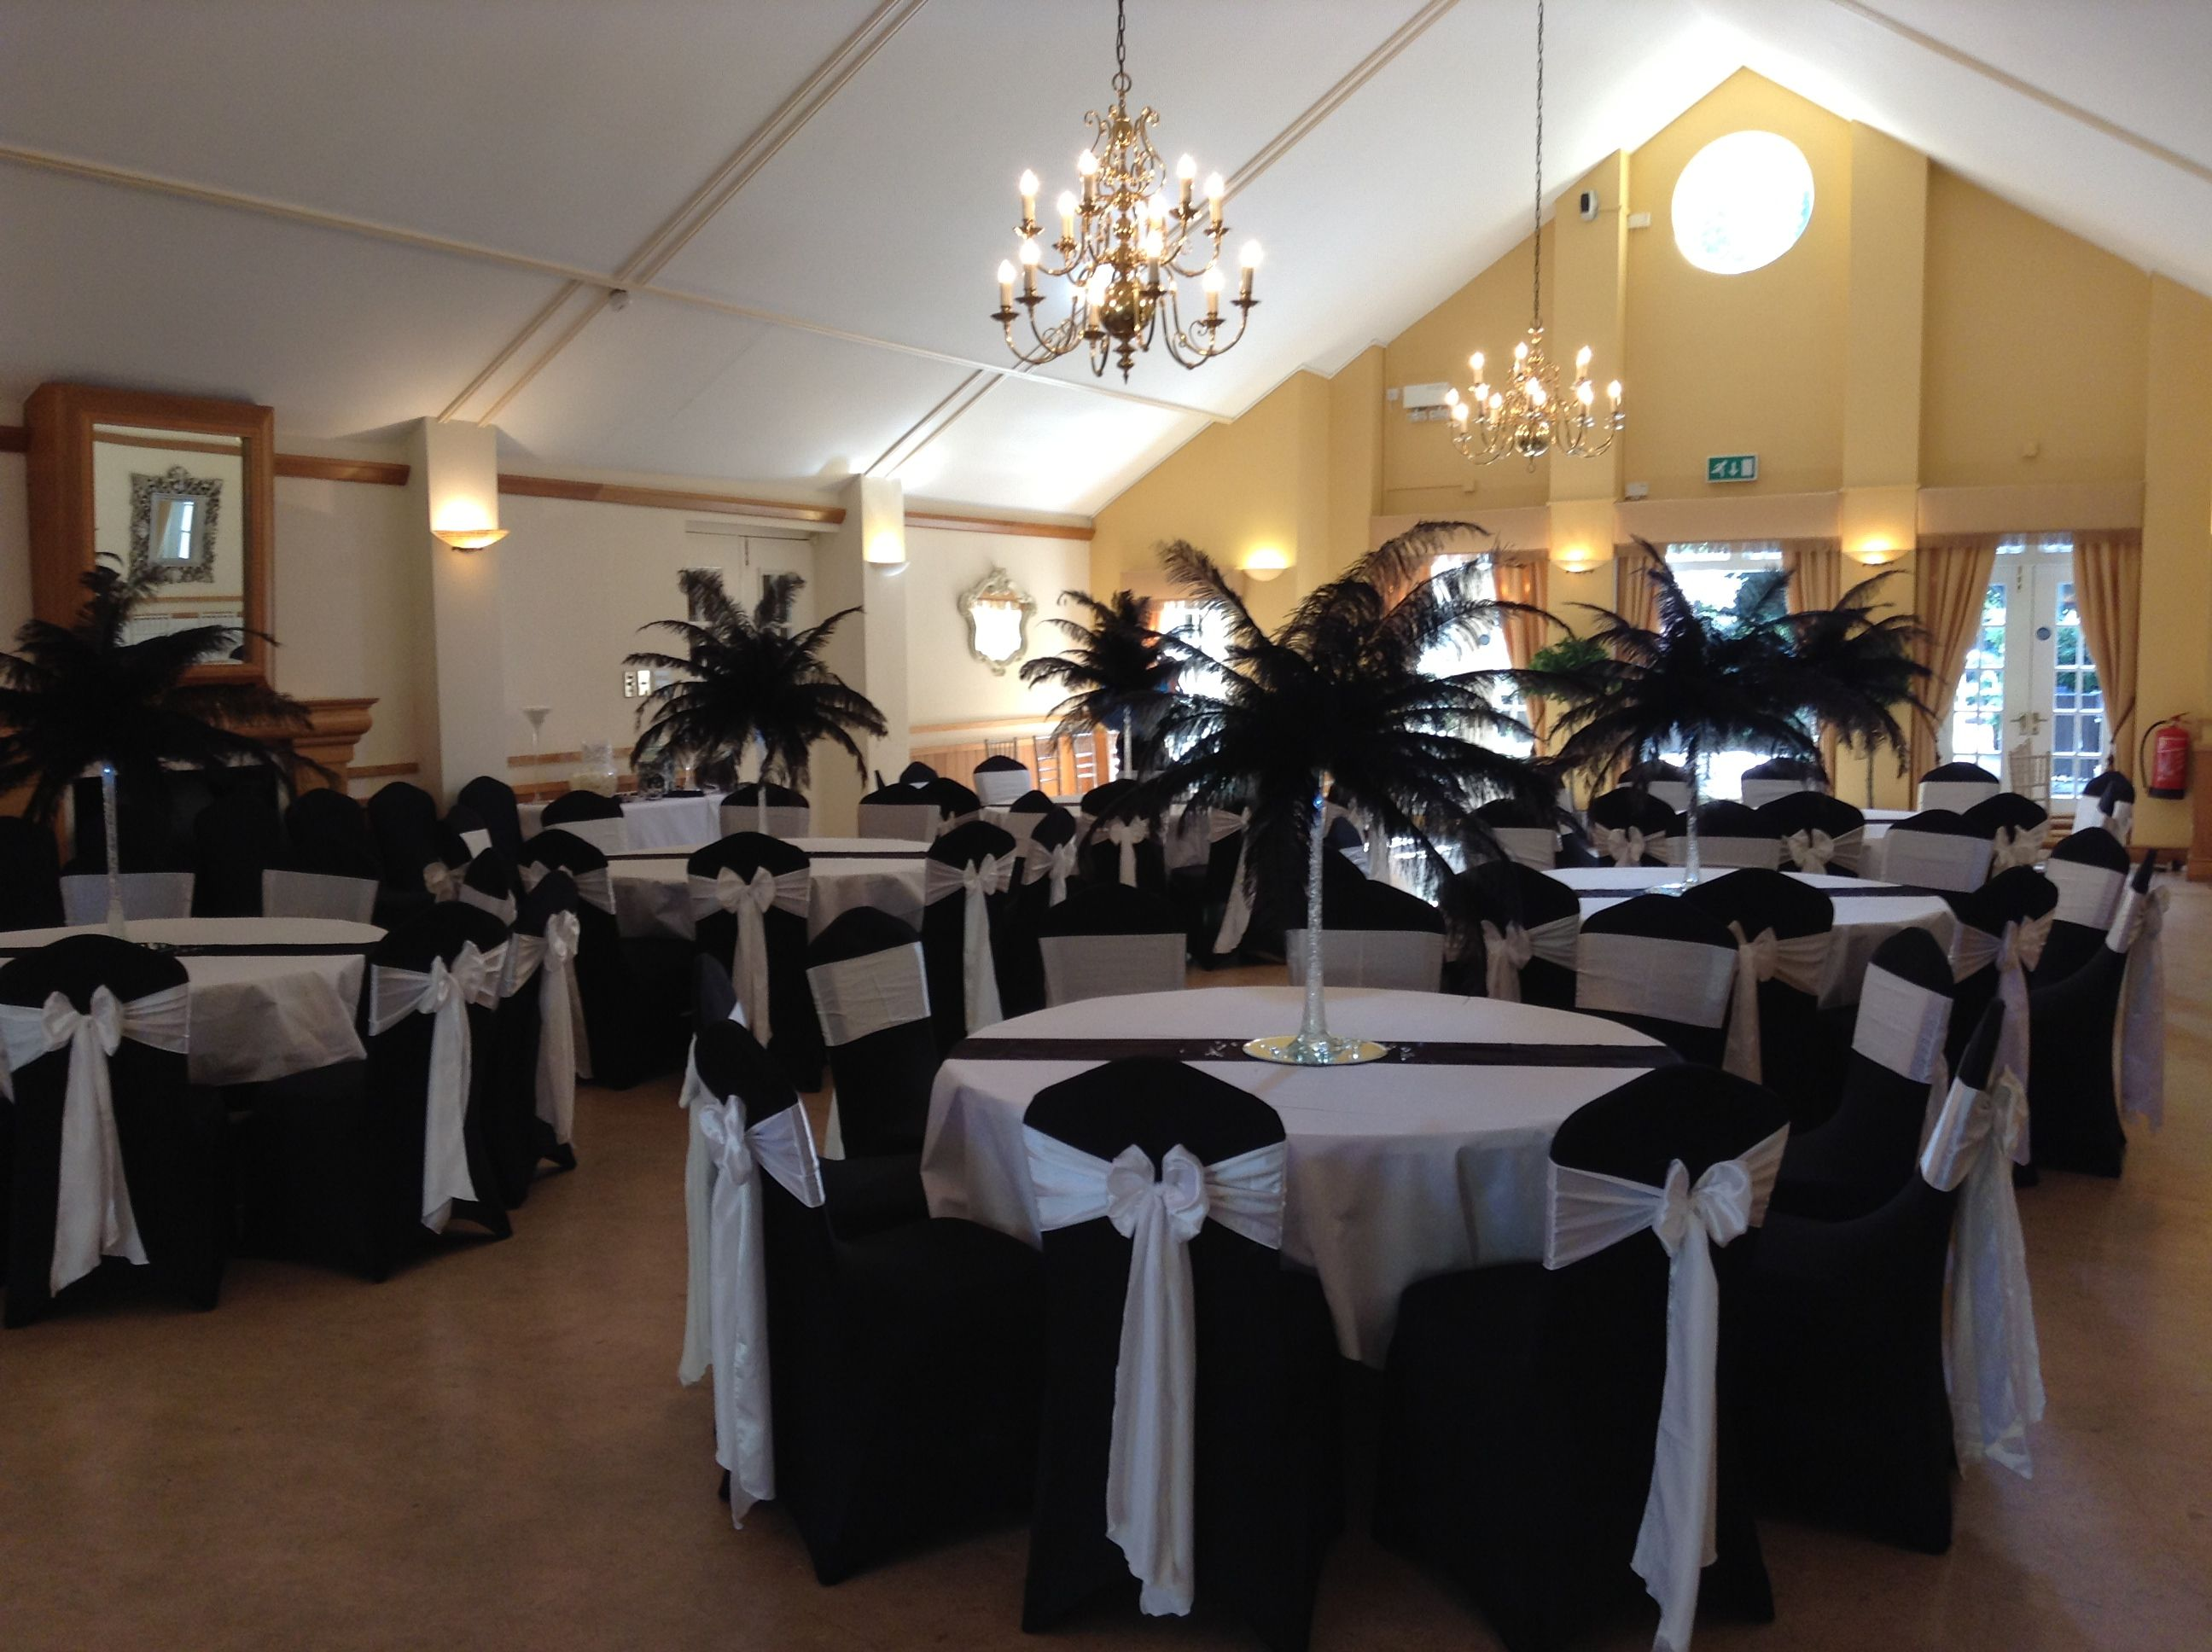 white covers wedding runner chair napkins tablecloths rental for black receptions